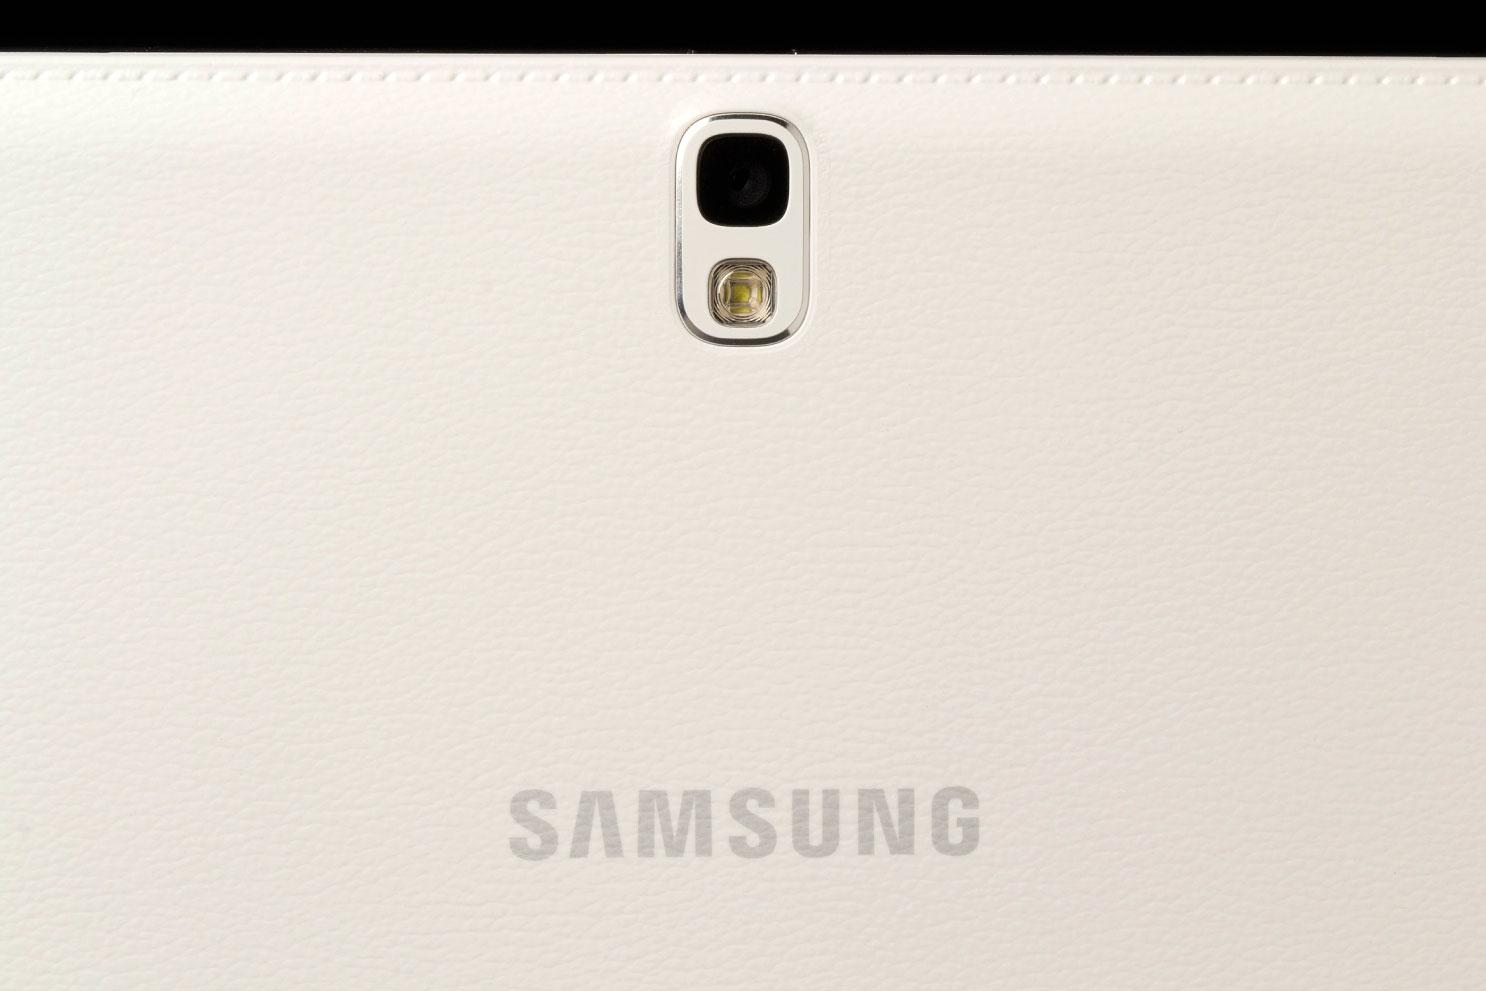 samsung-galaxy-note-10-1-back-camera.jpg